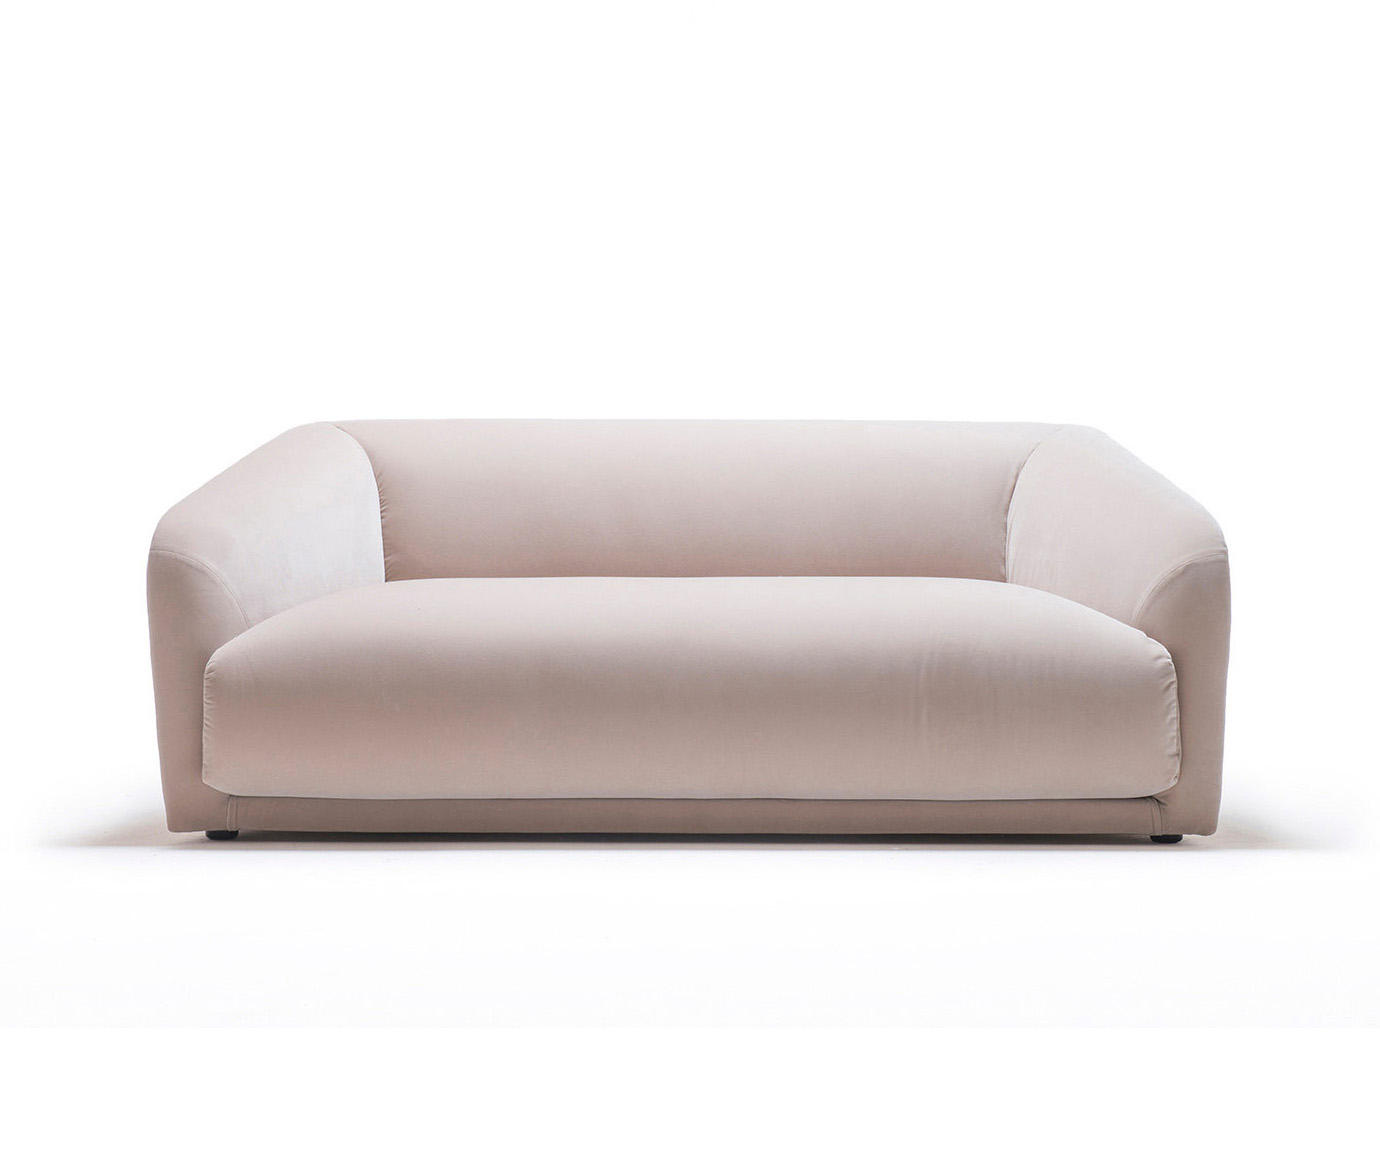 my home sofa PEGGY | SOFA   Sofas from My home collection | Architonic my home sofa